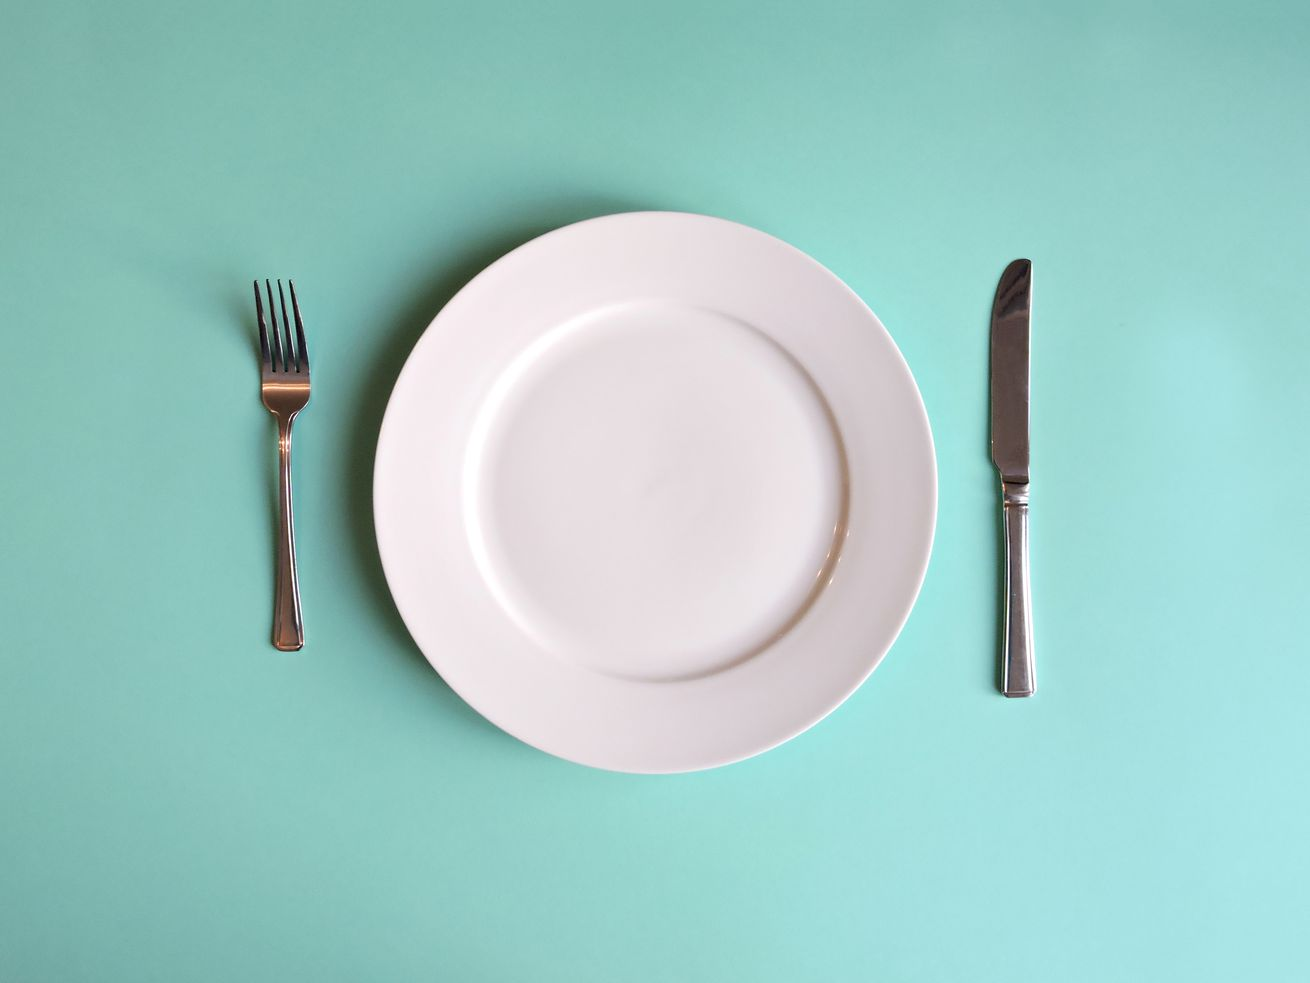 Researchers are exploring whether fasting might help fight cancer, or help cancer patients tolerate chemotherapy. And they're putting serious thought into whether fasting has a role in treating and preventing diabetes, cardiovascular disease, and multiple sclerosis.